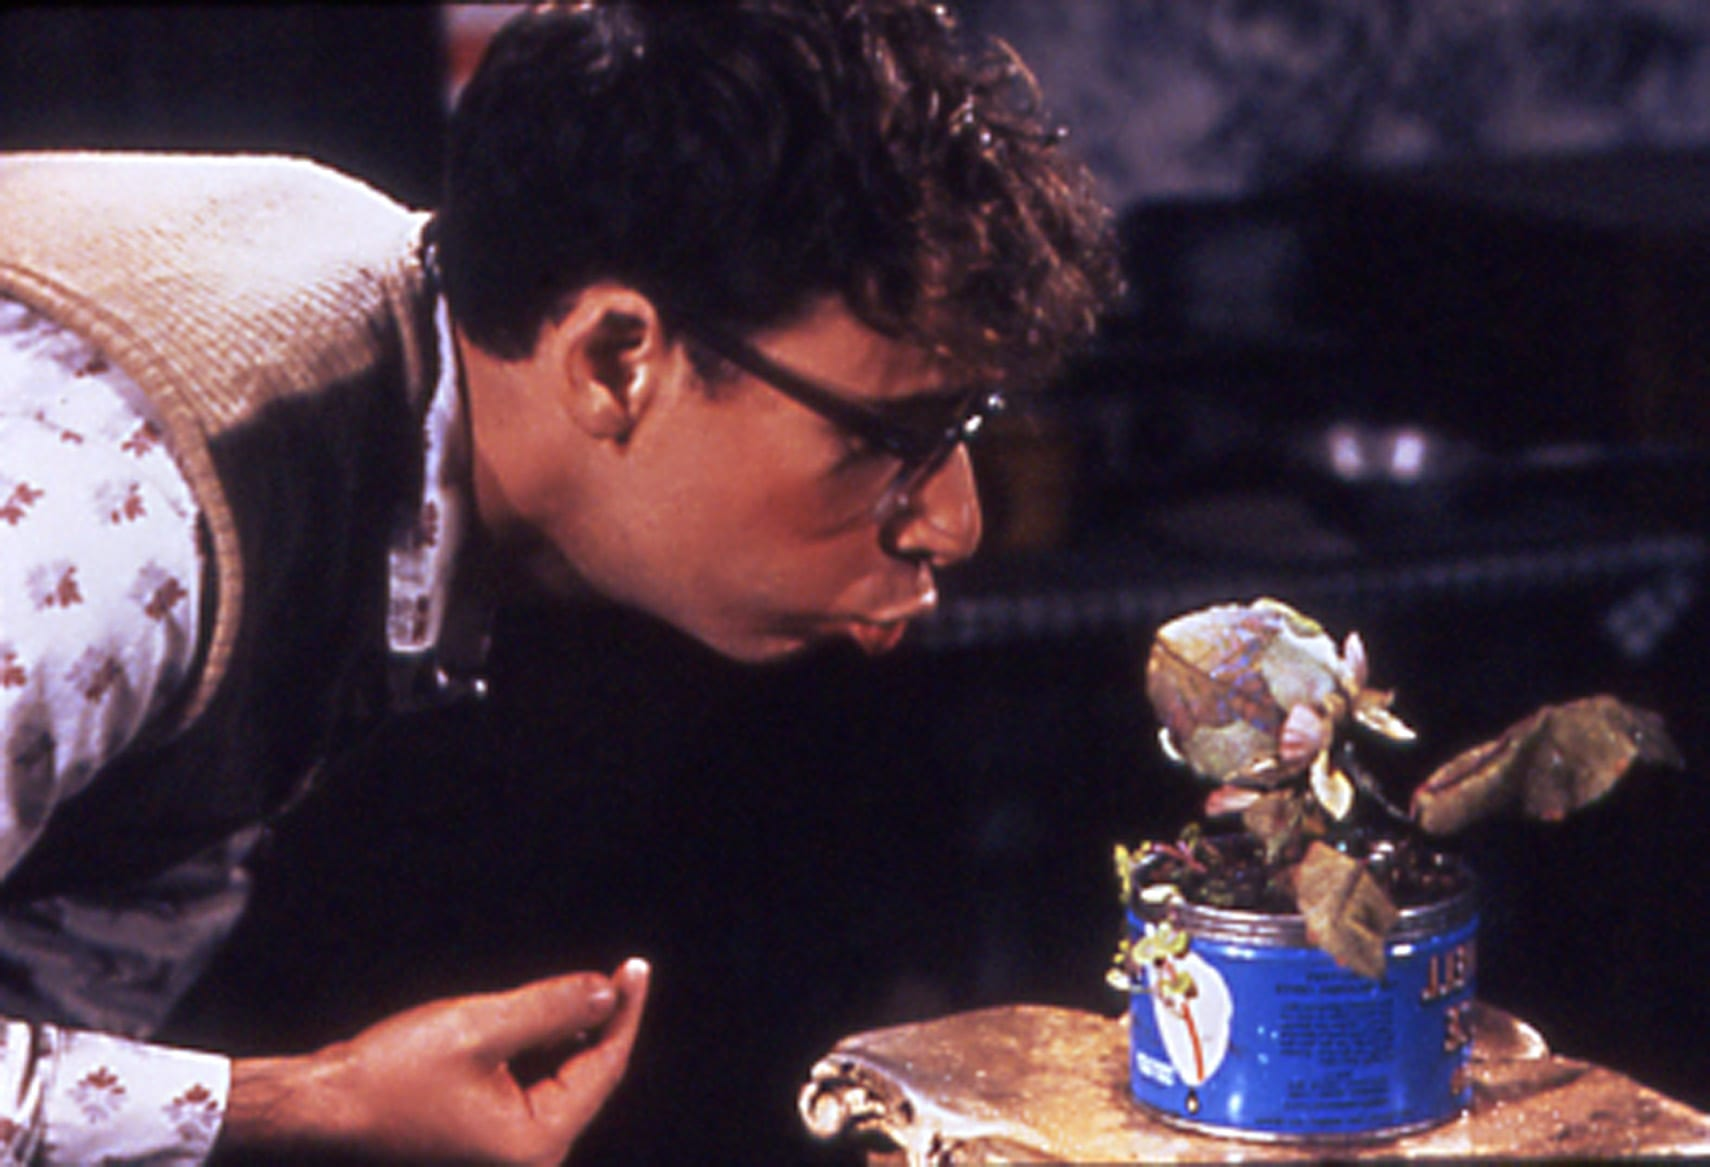 19 1 25 Things You Never Knew About Little Shop of Horrors